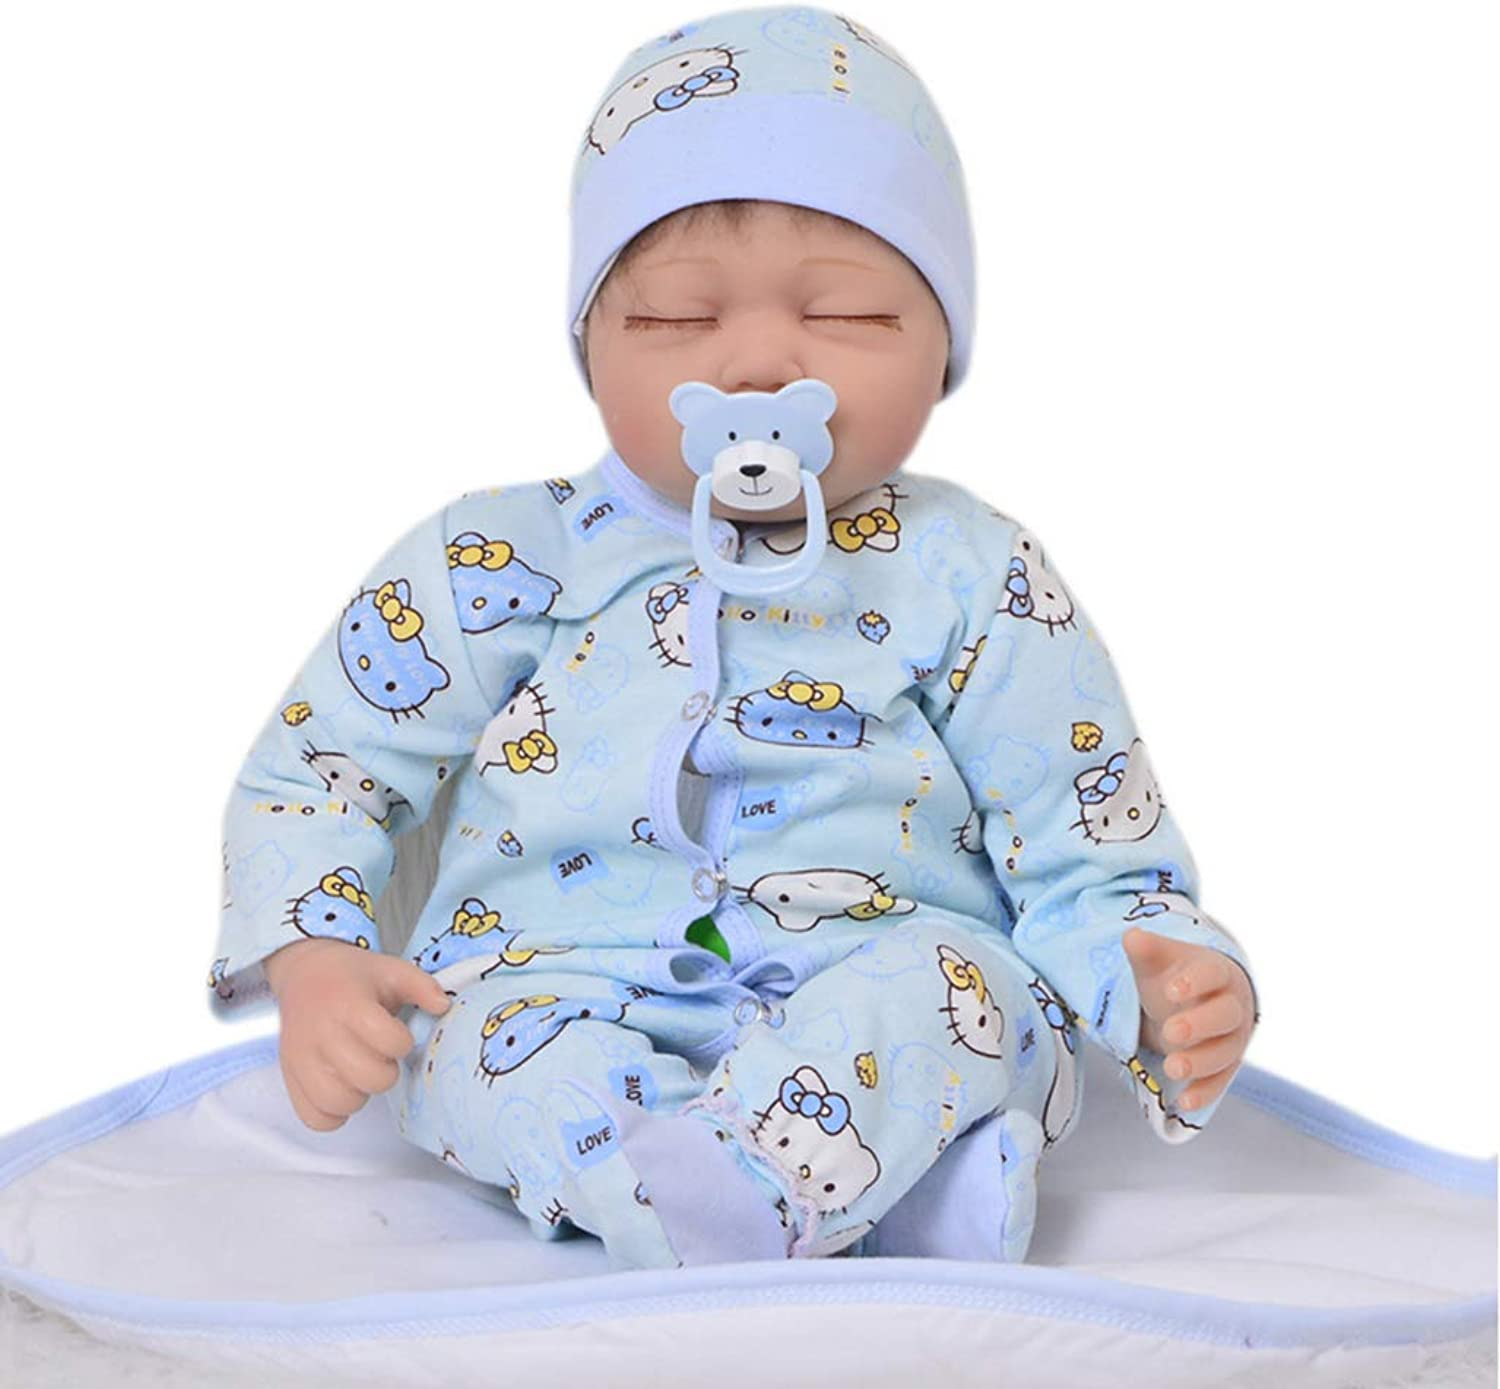 UBTY Simulation Eyes Closed Cute Boy 22inch 55cm Reborn Baby Doll Soft Vinyl Silicone Magnetic Mouth Look Real Kids Toys